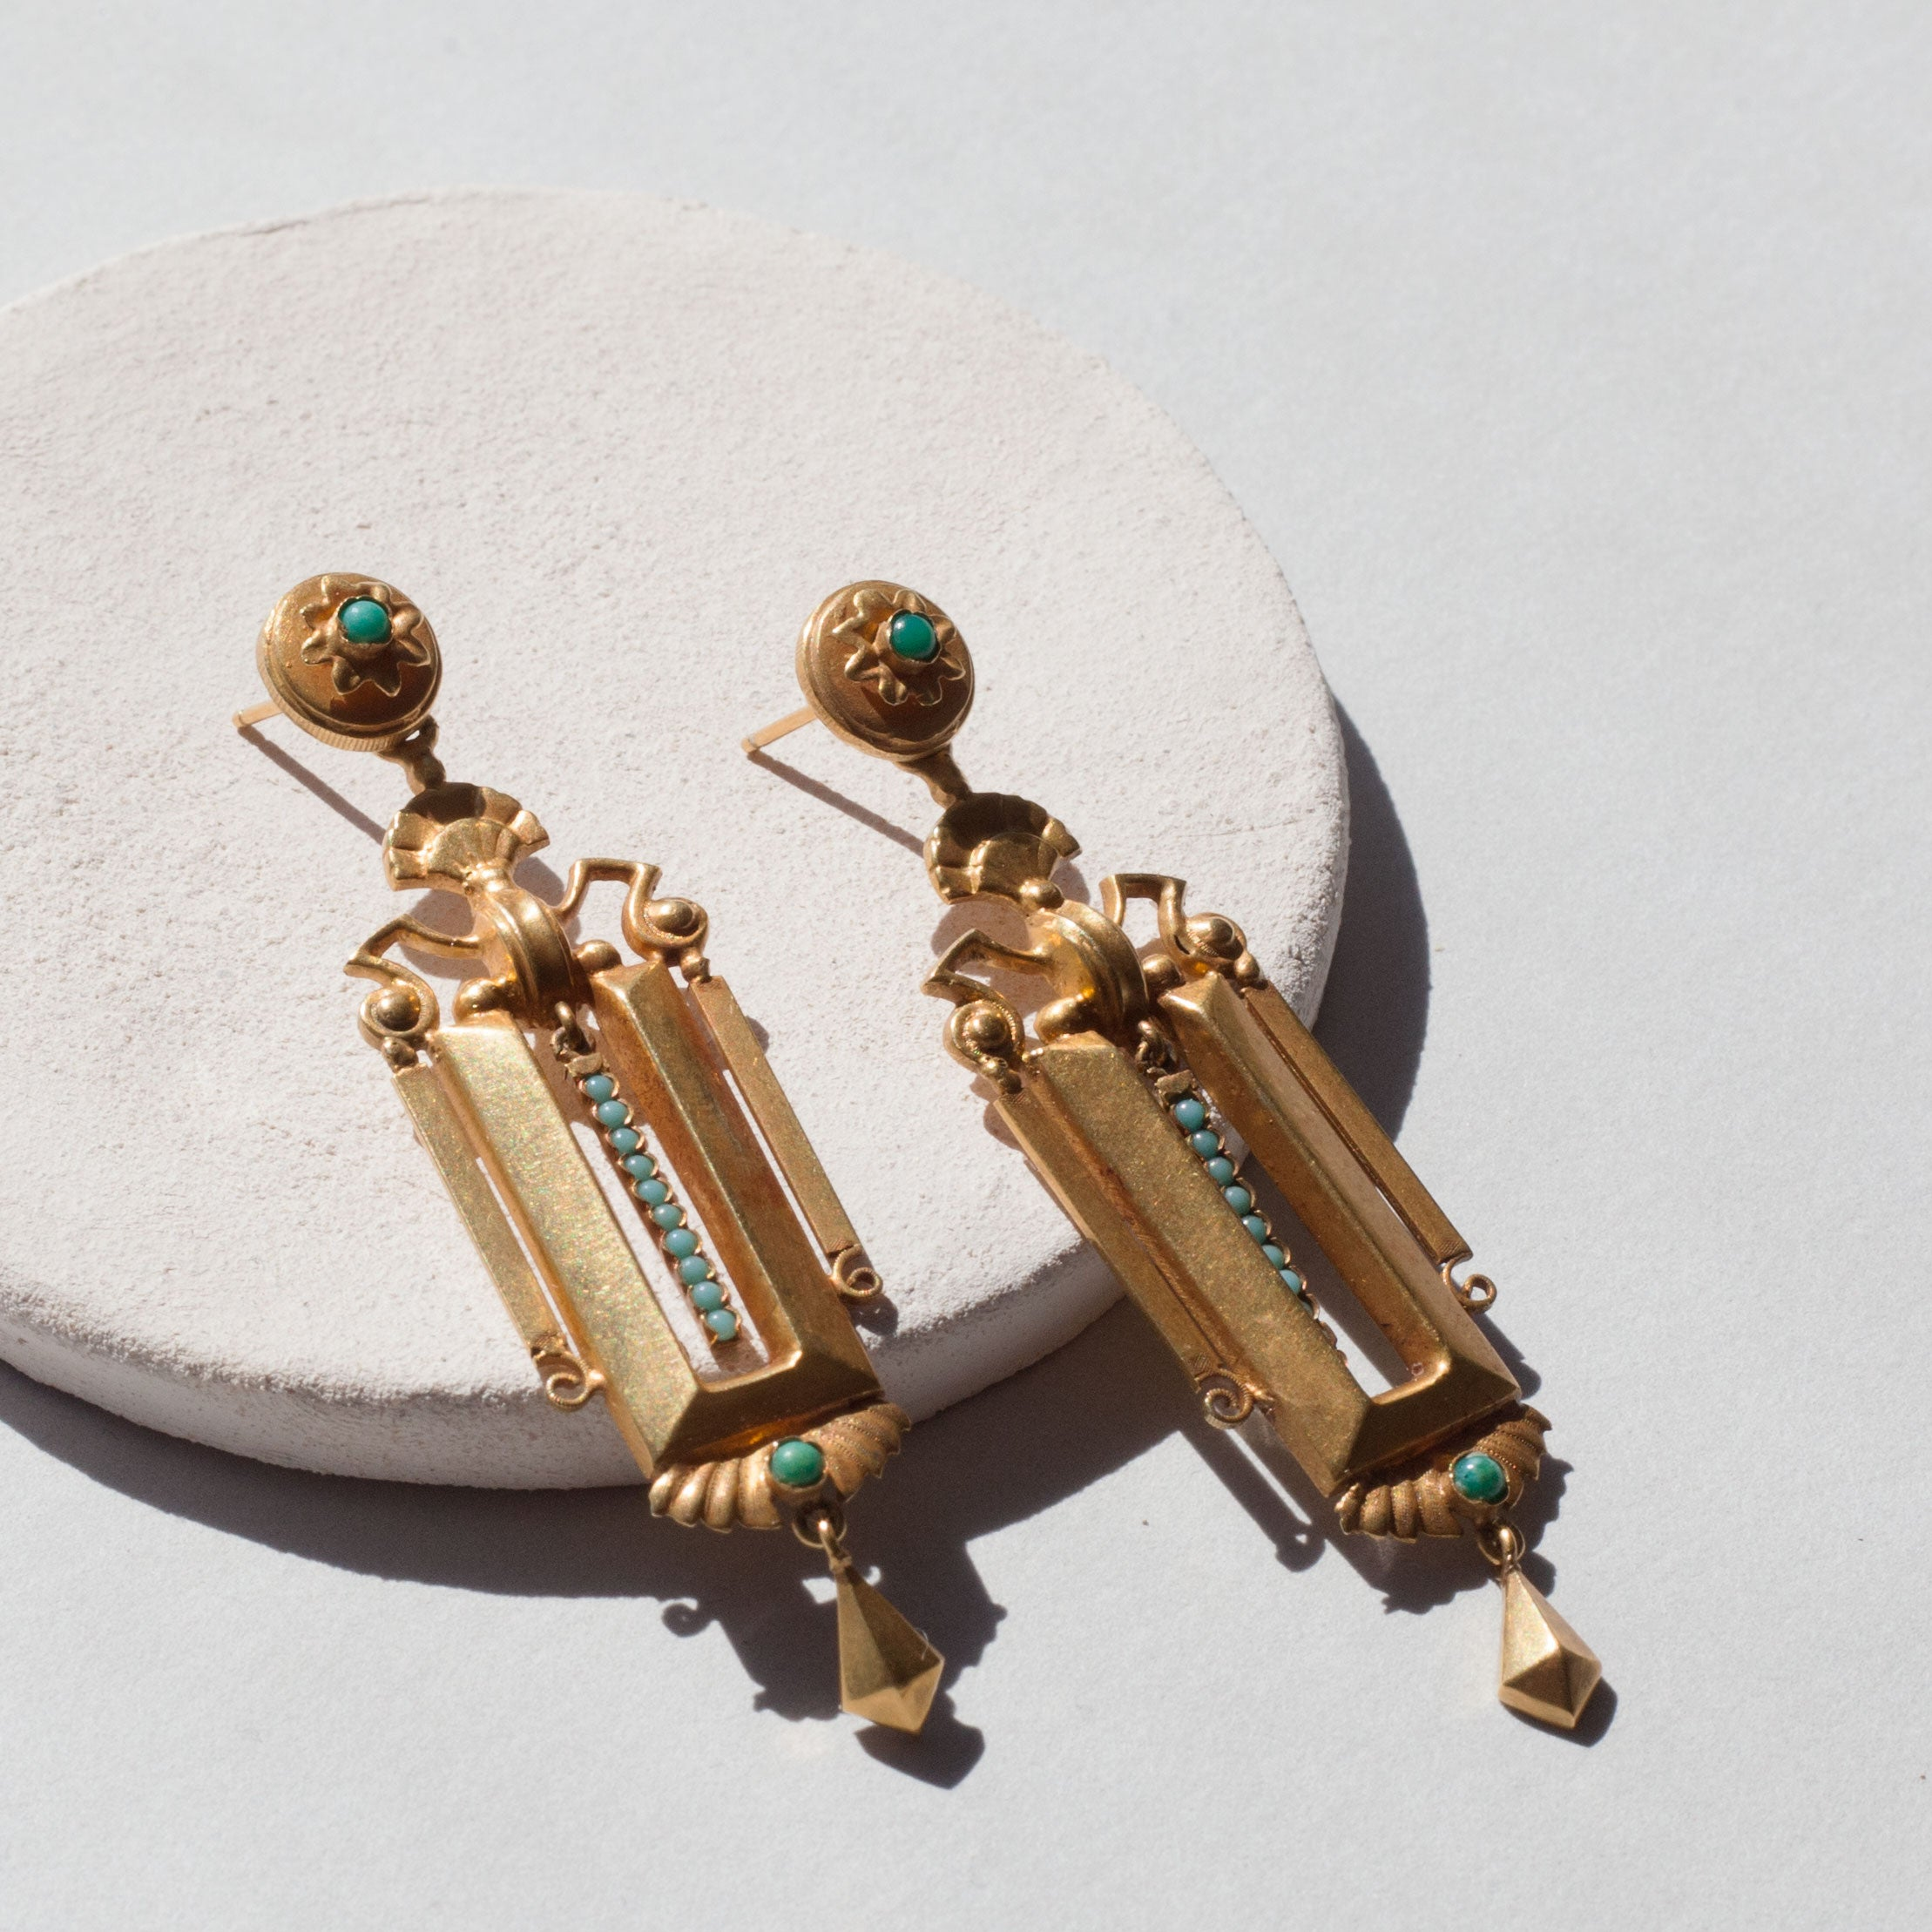 Victorian Etruscan Revival 18K Gold And Turquoise Earrings